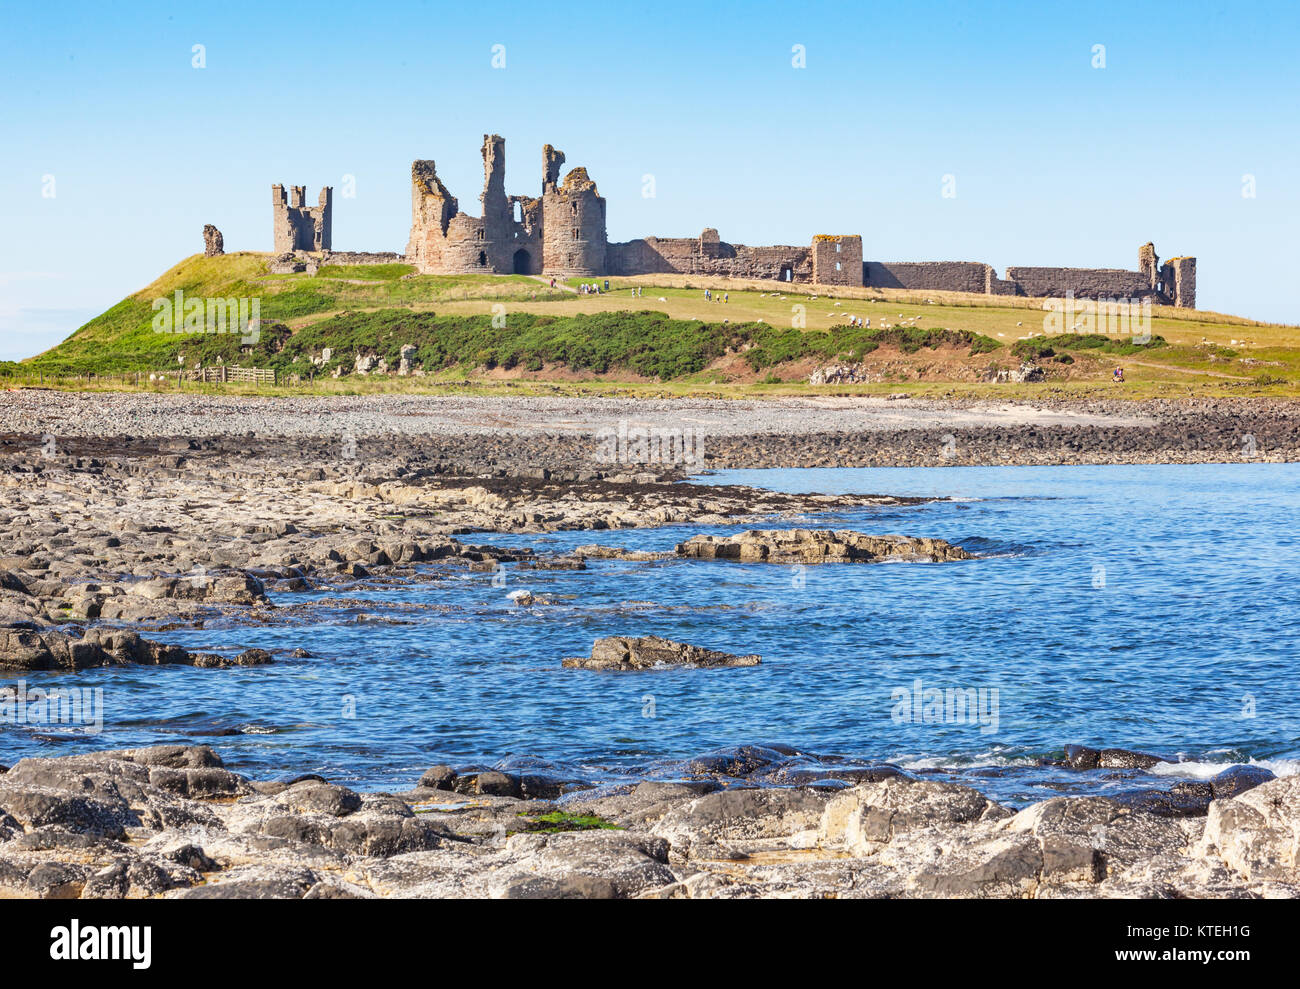 Dunstanburgh Castle is a 14th-century fortification on the coast of Northumberland in northern England, situated - Stock Image